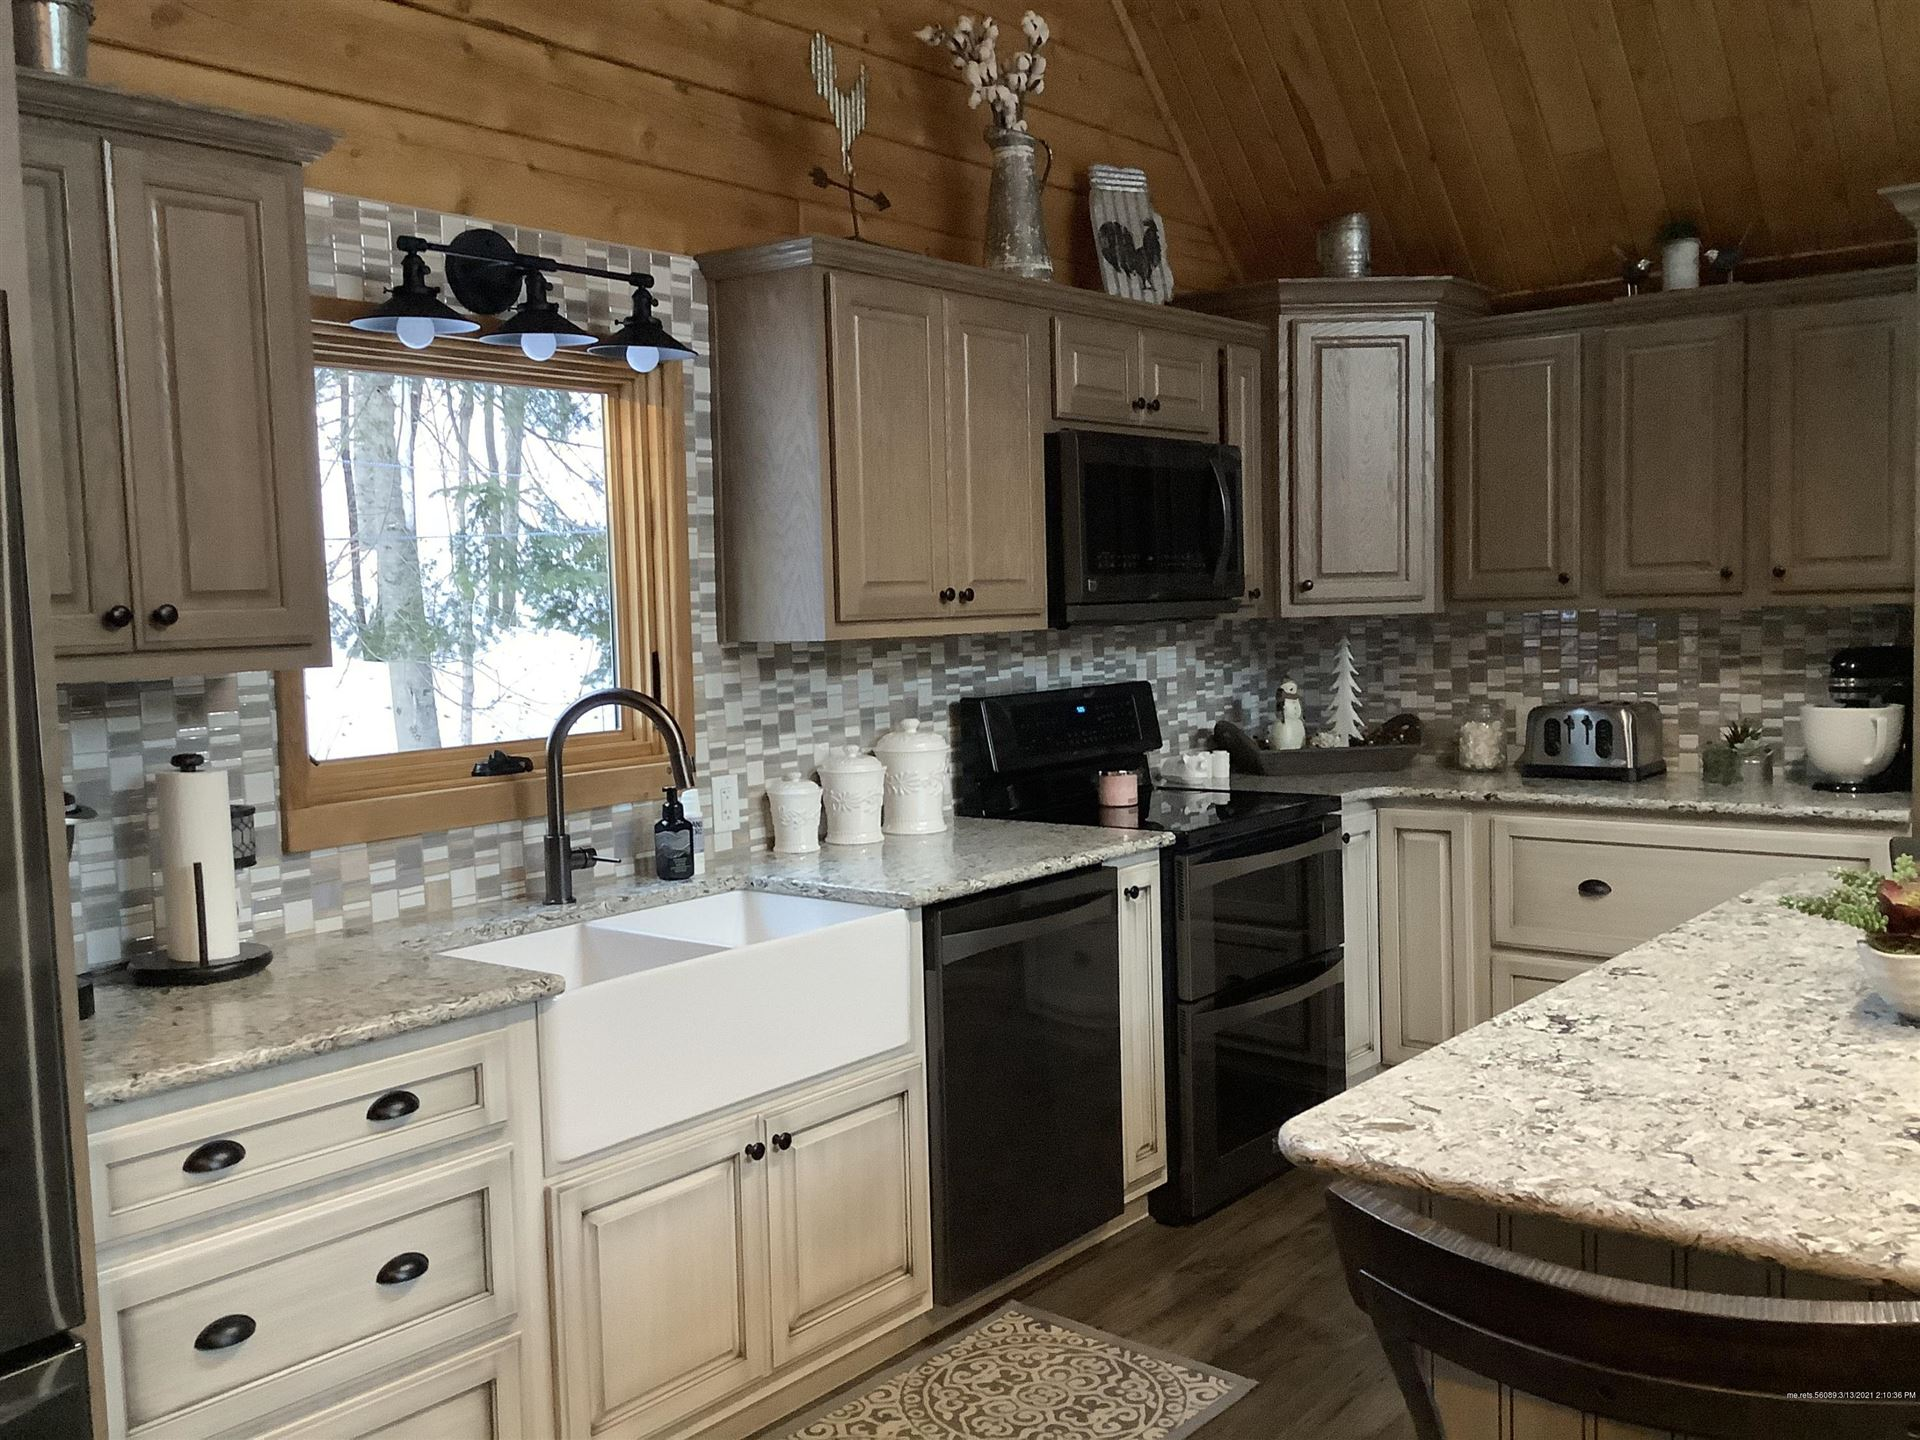 Photo of 16 Clavette Road, New Canada, ME 04743 (MLS # 1484234)